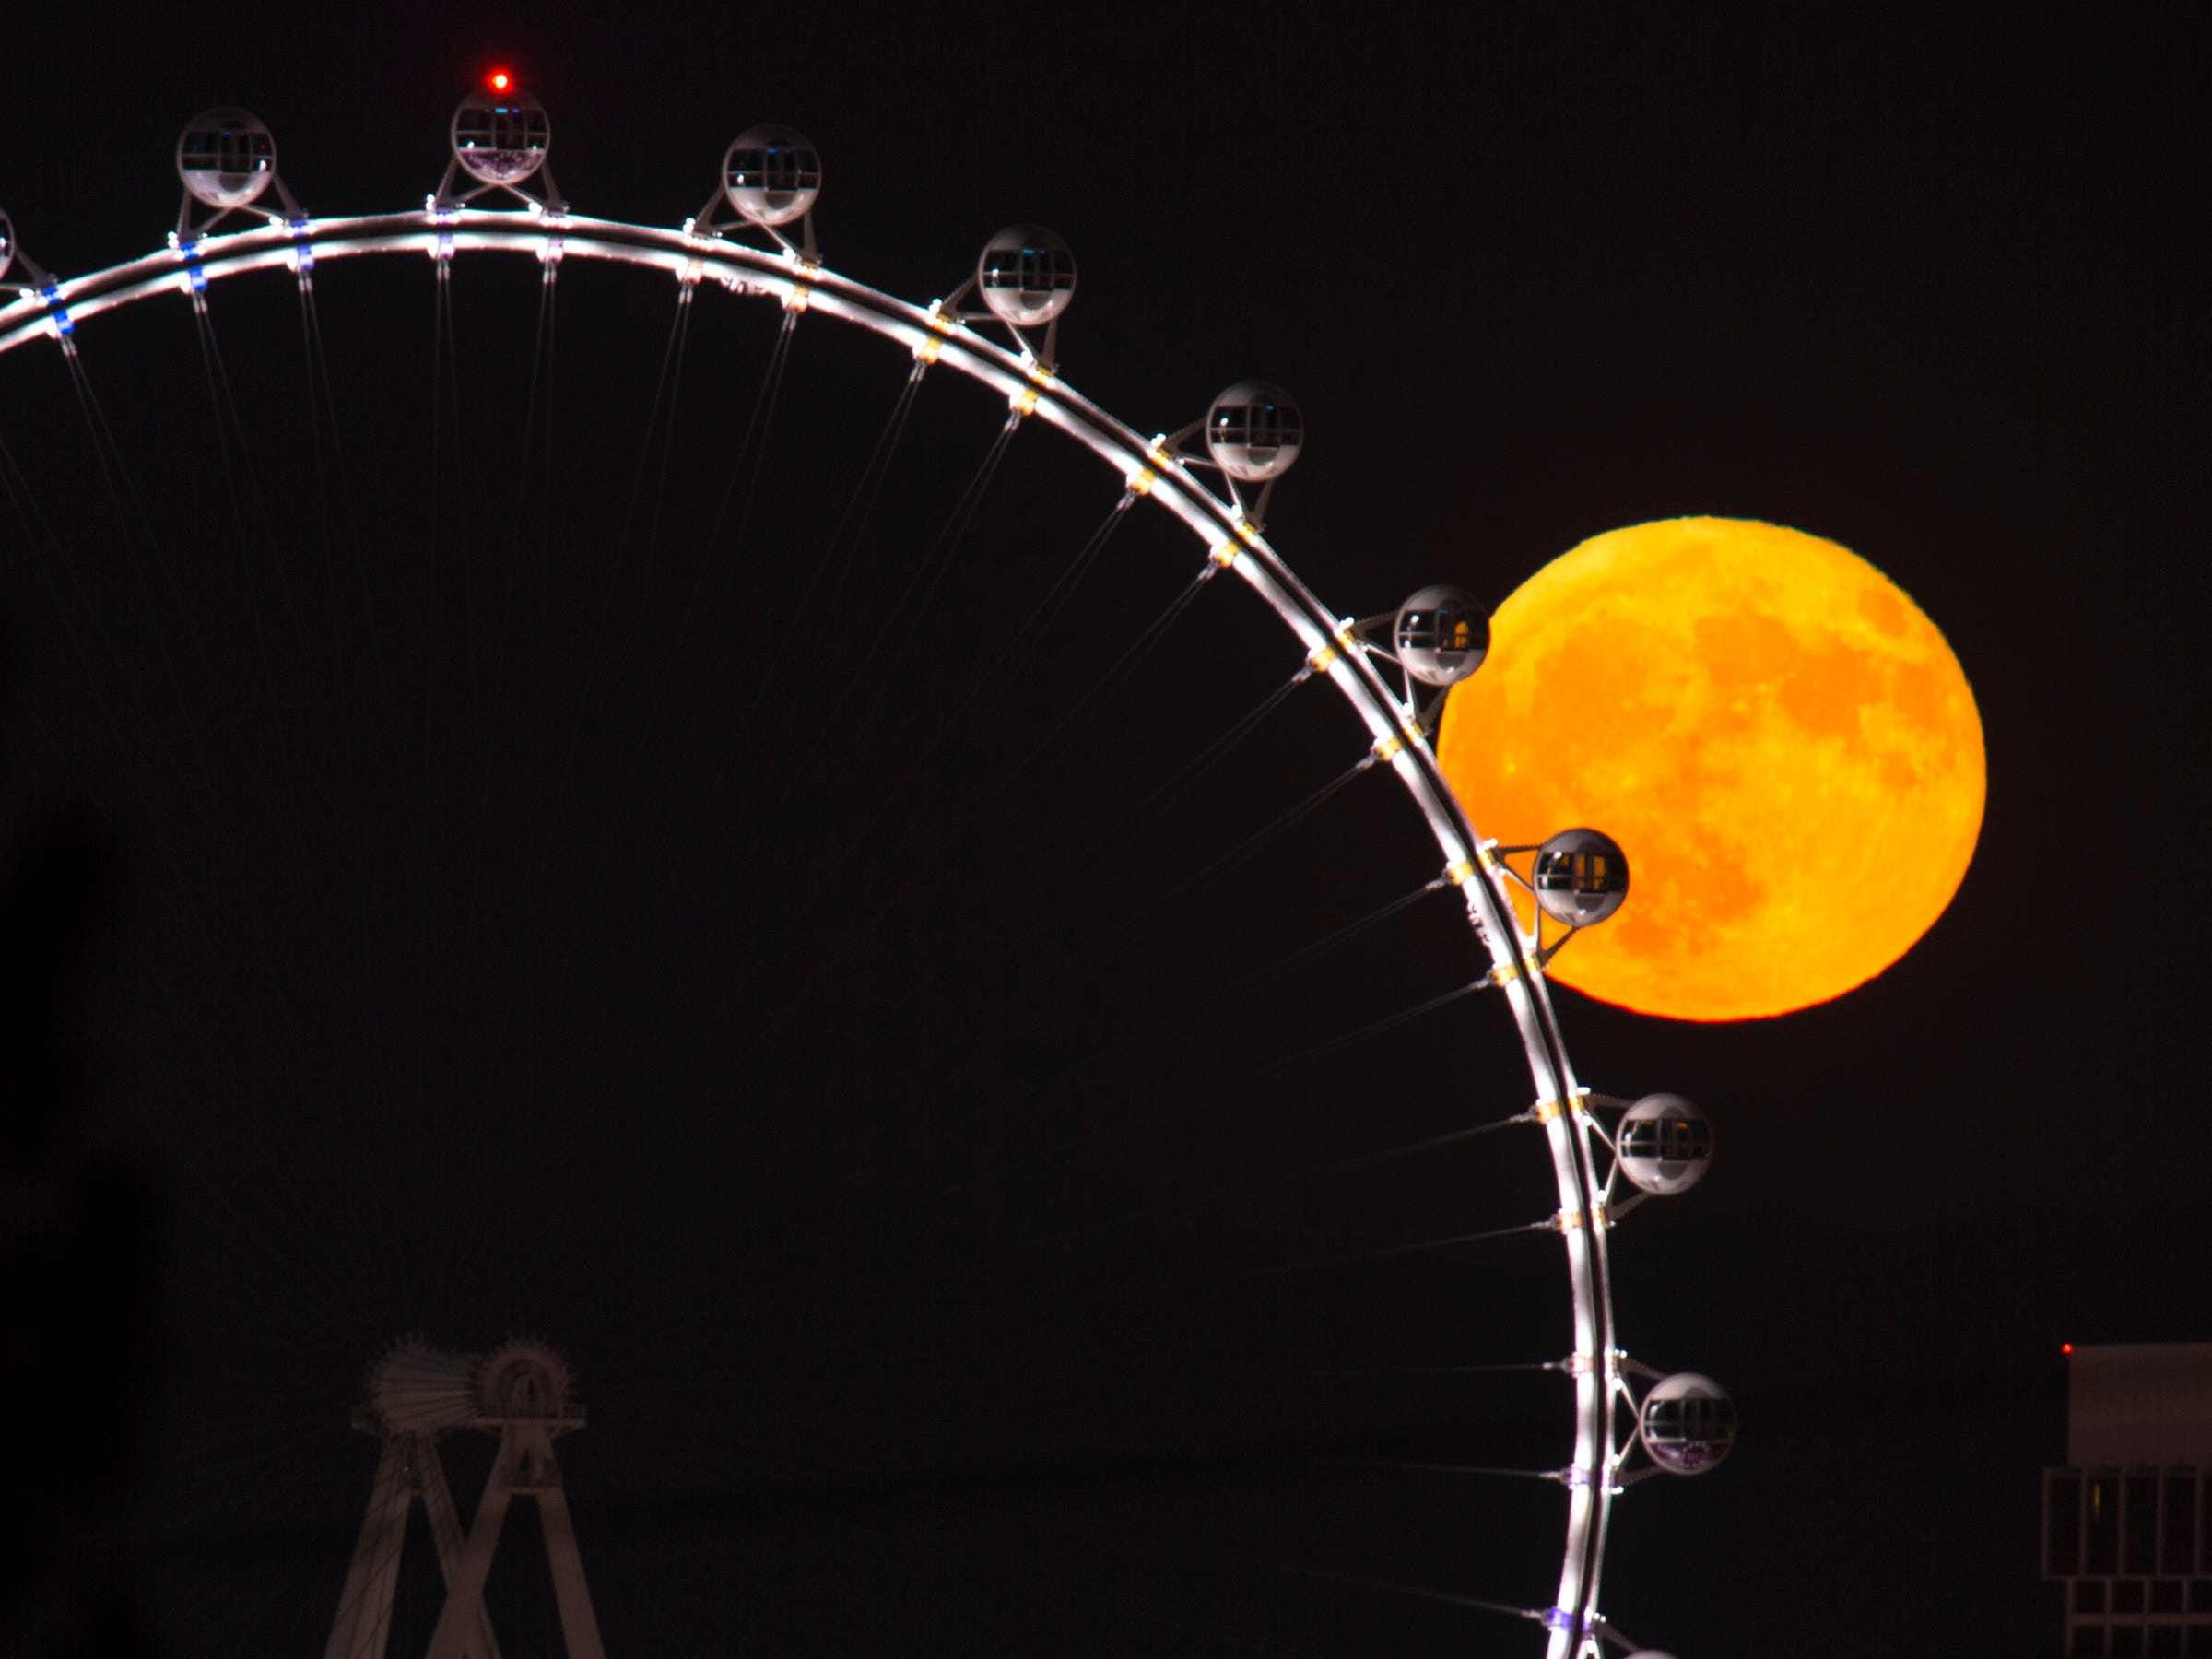 A full moon rises behind the High Roller observation wheel on the Strip in Las Vegas on Sunday, Aug. 26, 2018.